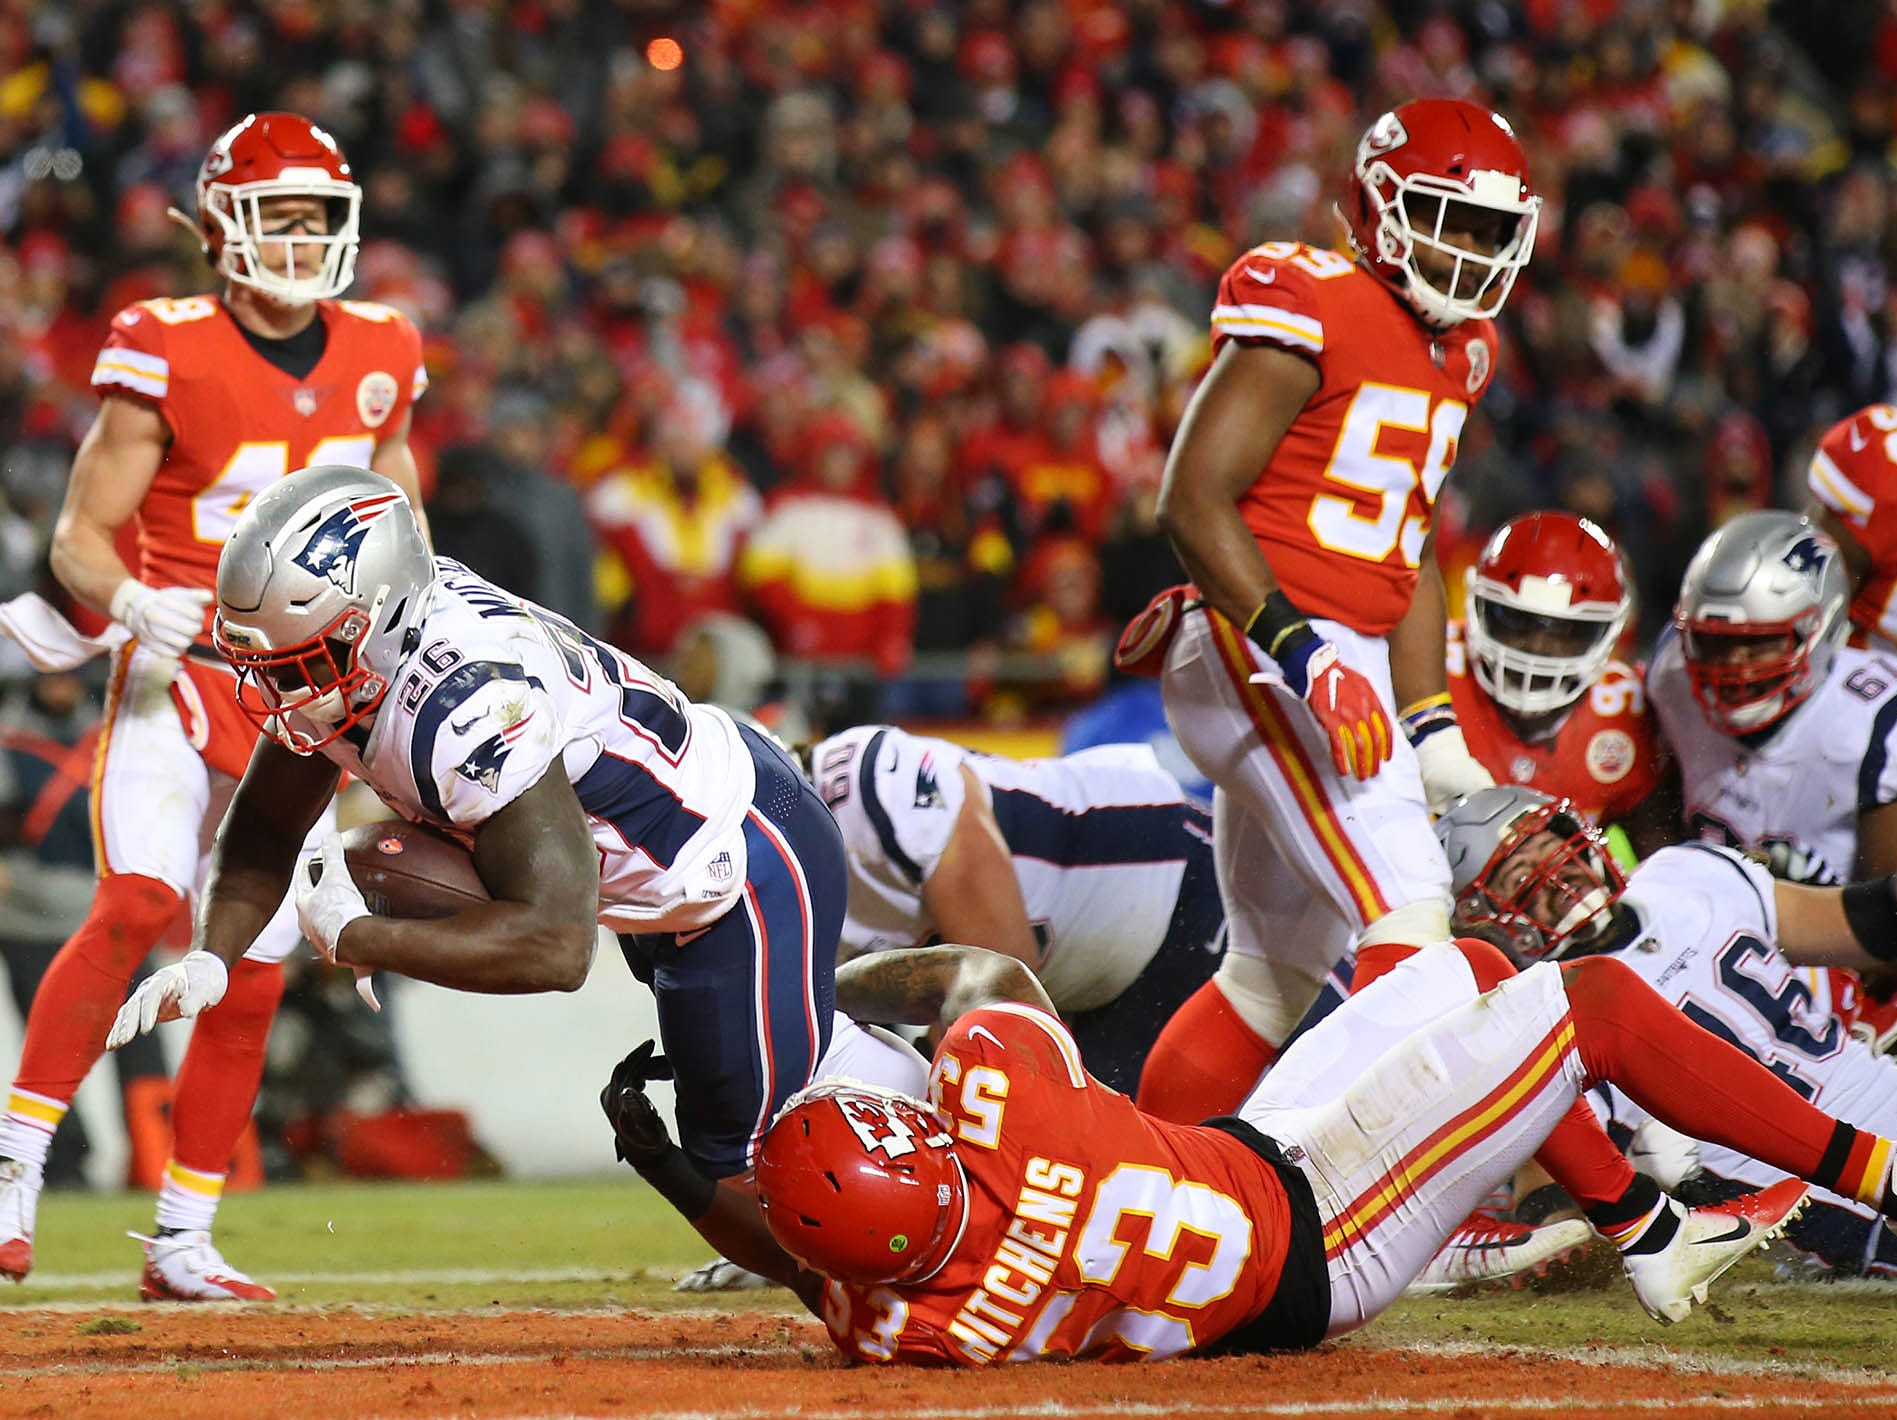 New England Patriots running back Sony Michel (26) scores a touchdown against the Kansas City Chiefs during the first quarter of the AFC Championship Game at Arrowhead Stadium.